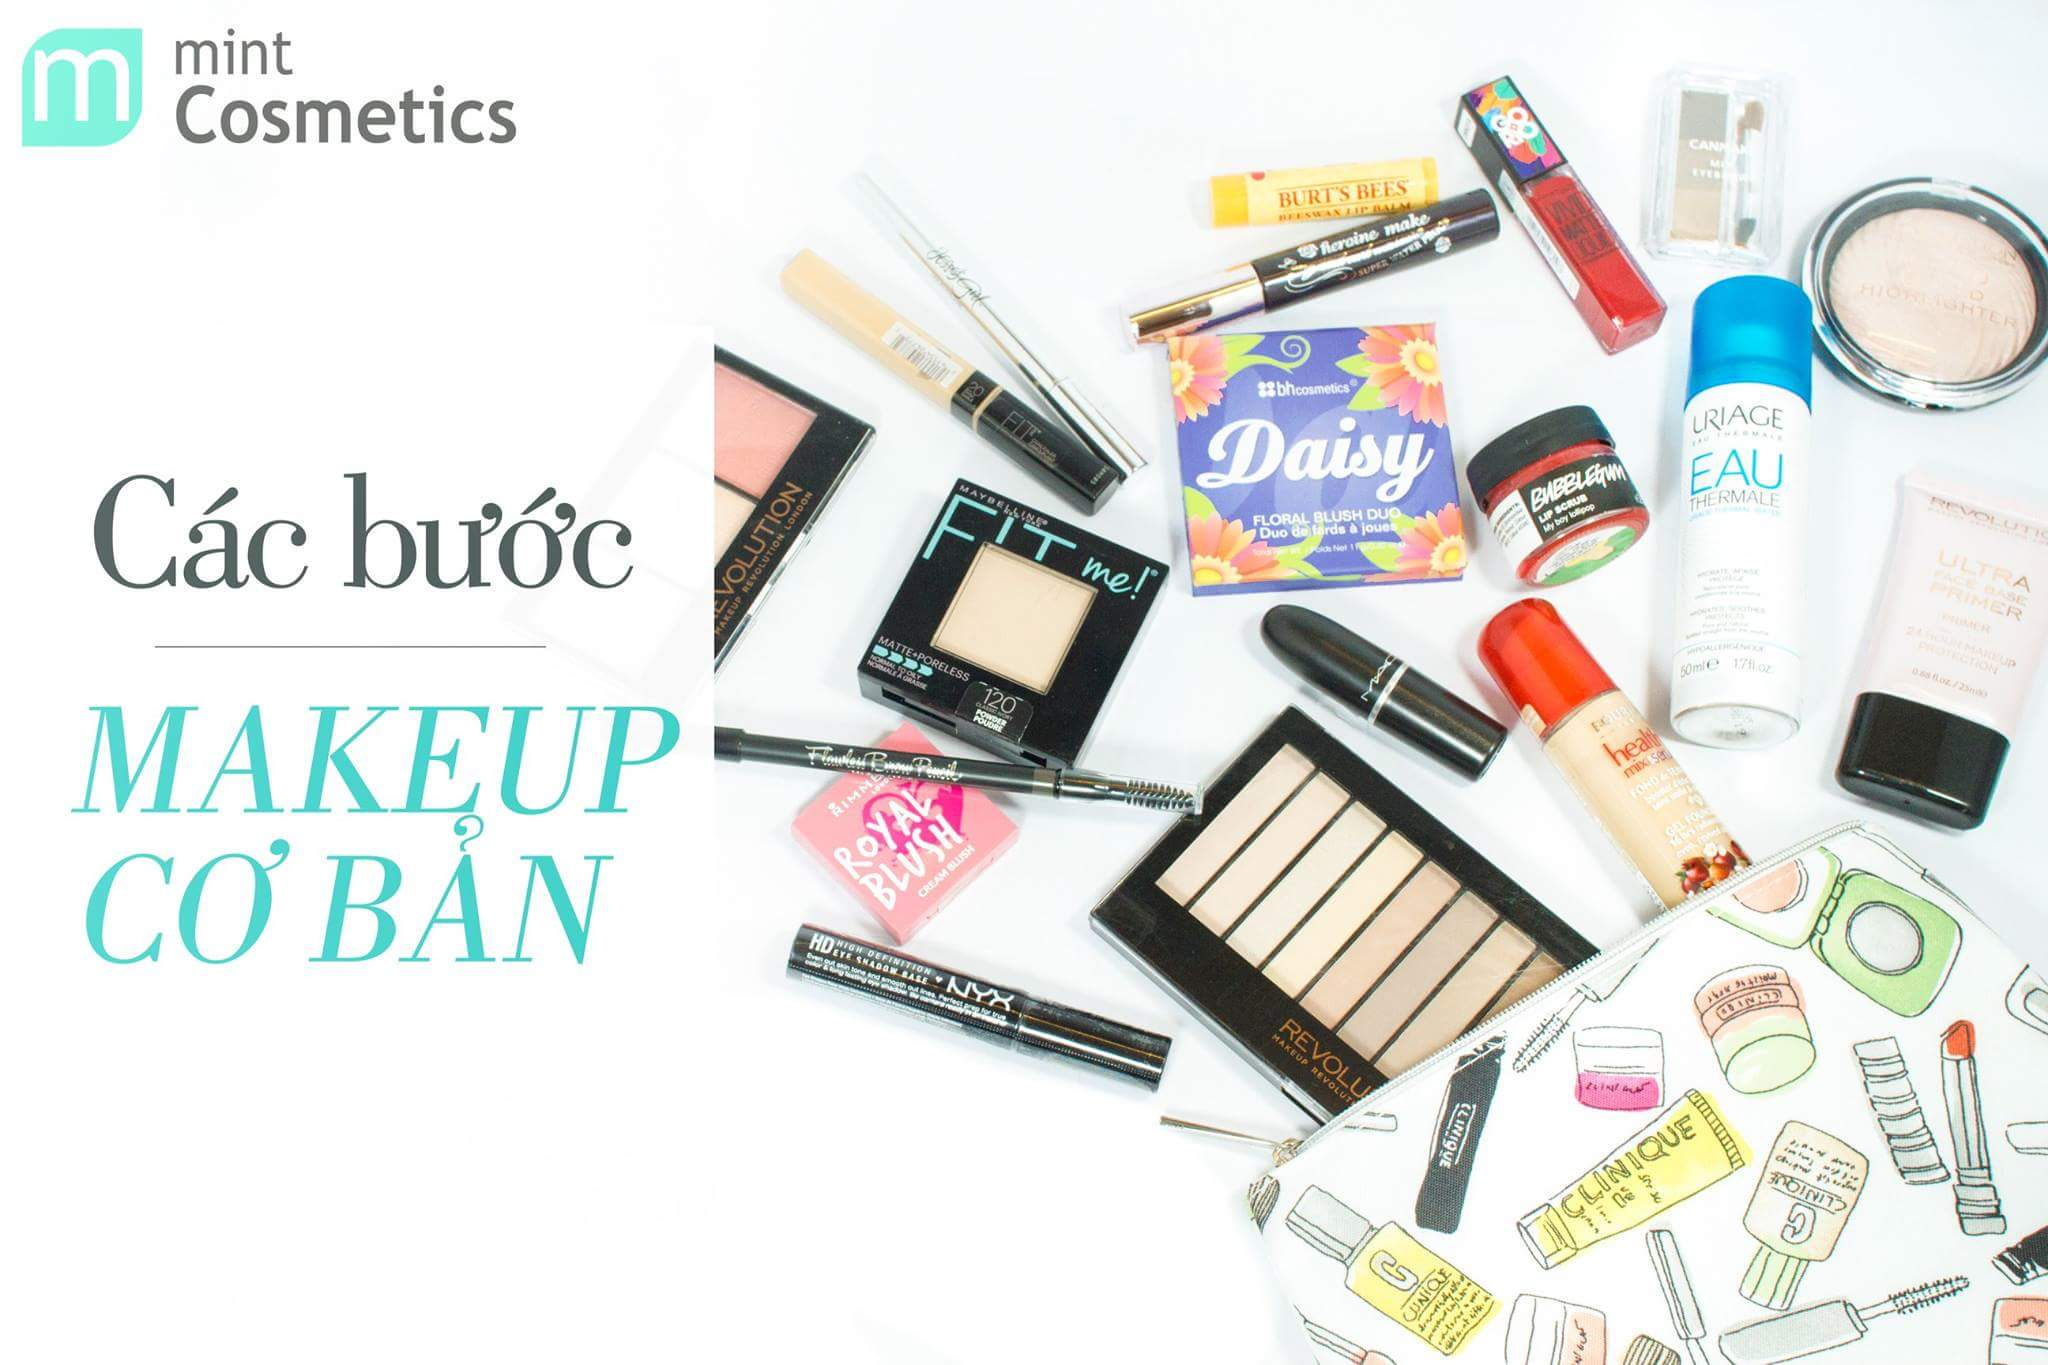 cac-buoc-make-up-co-ban